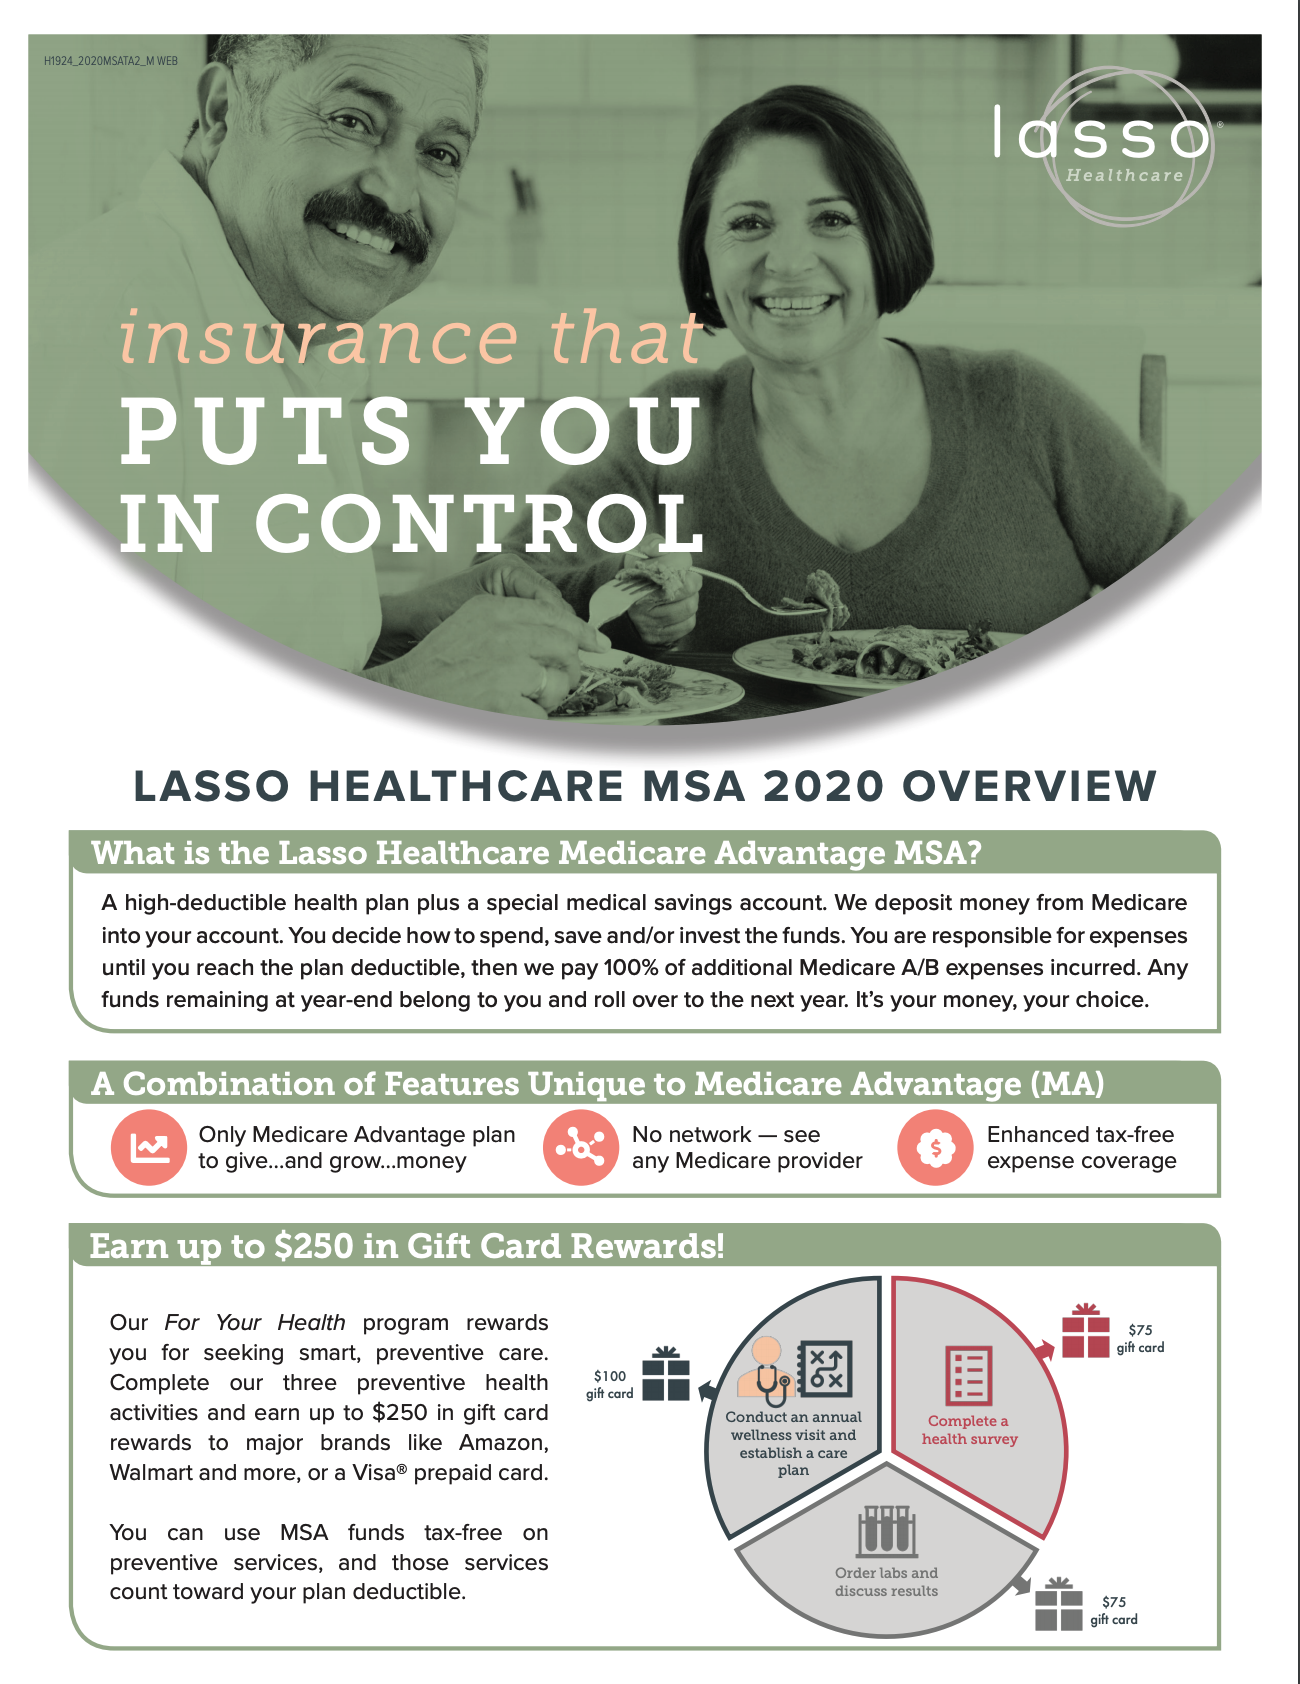 2020 Lasso Healthcare MSA Client Leave Behind